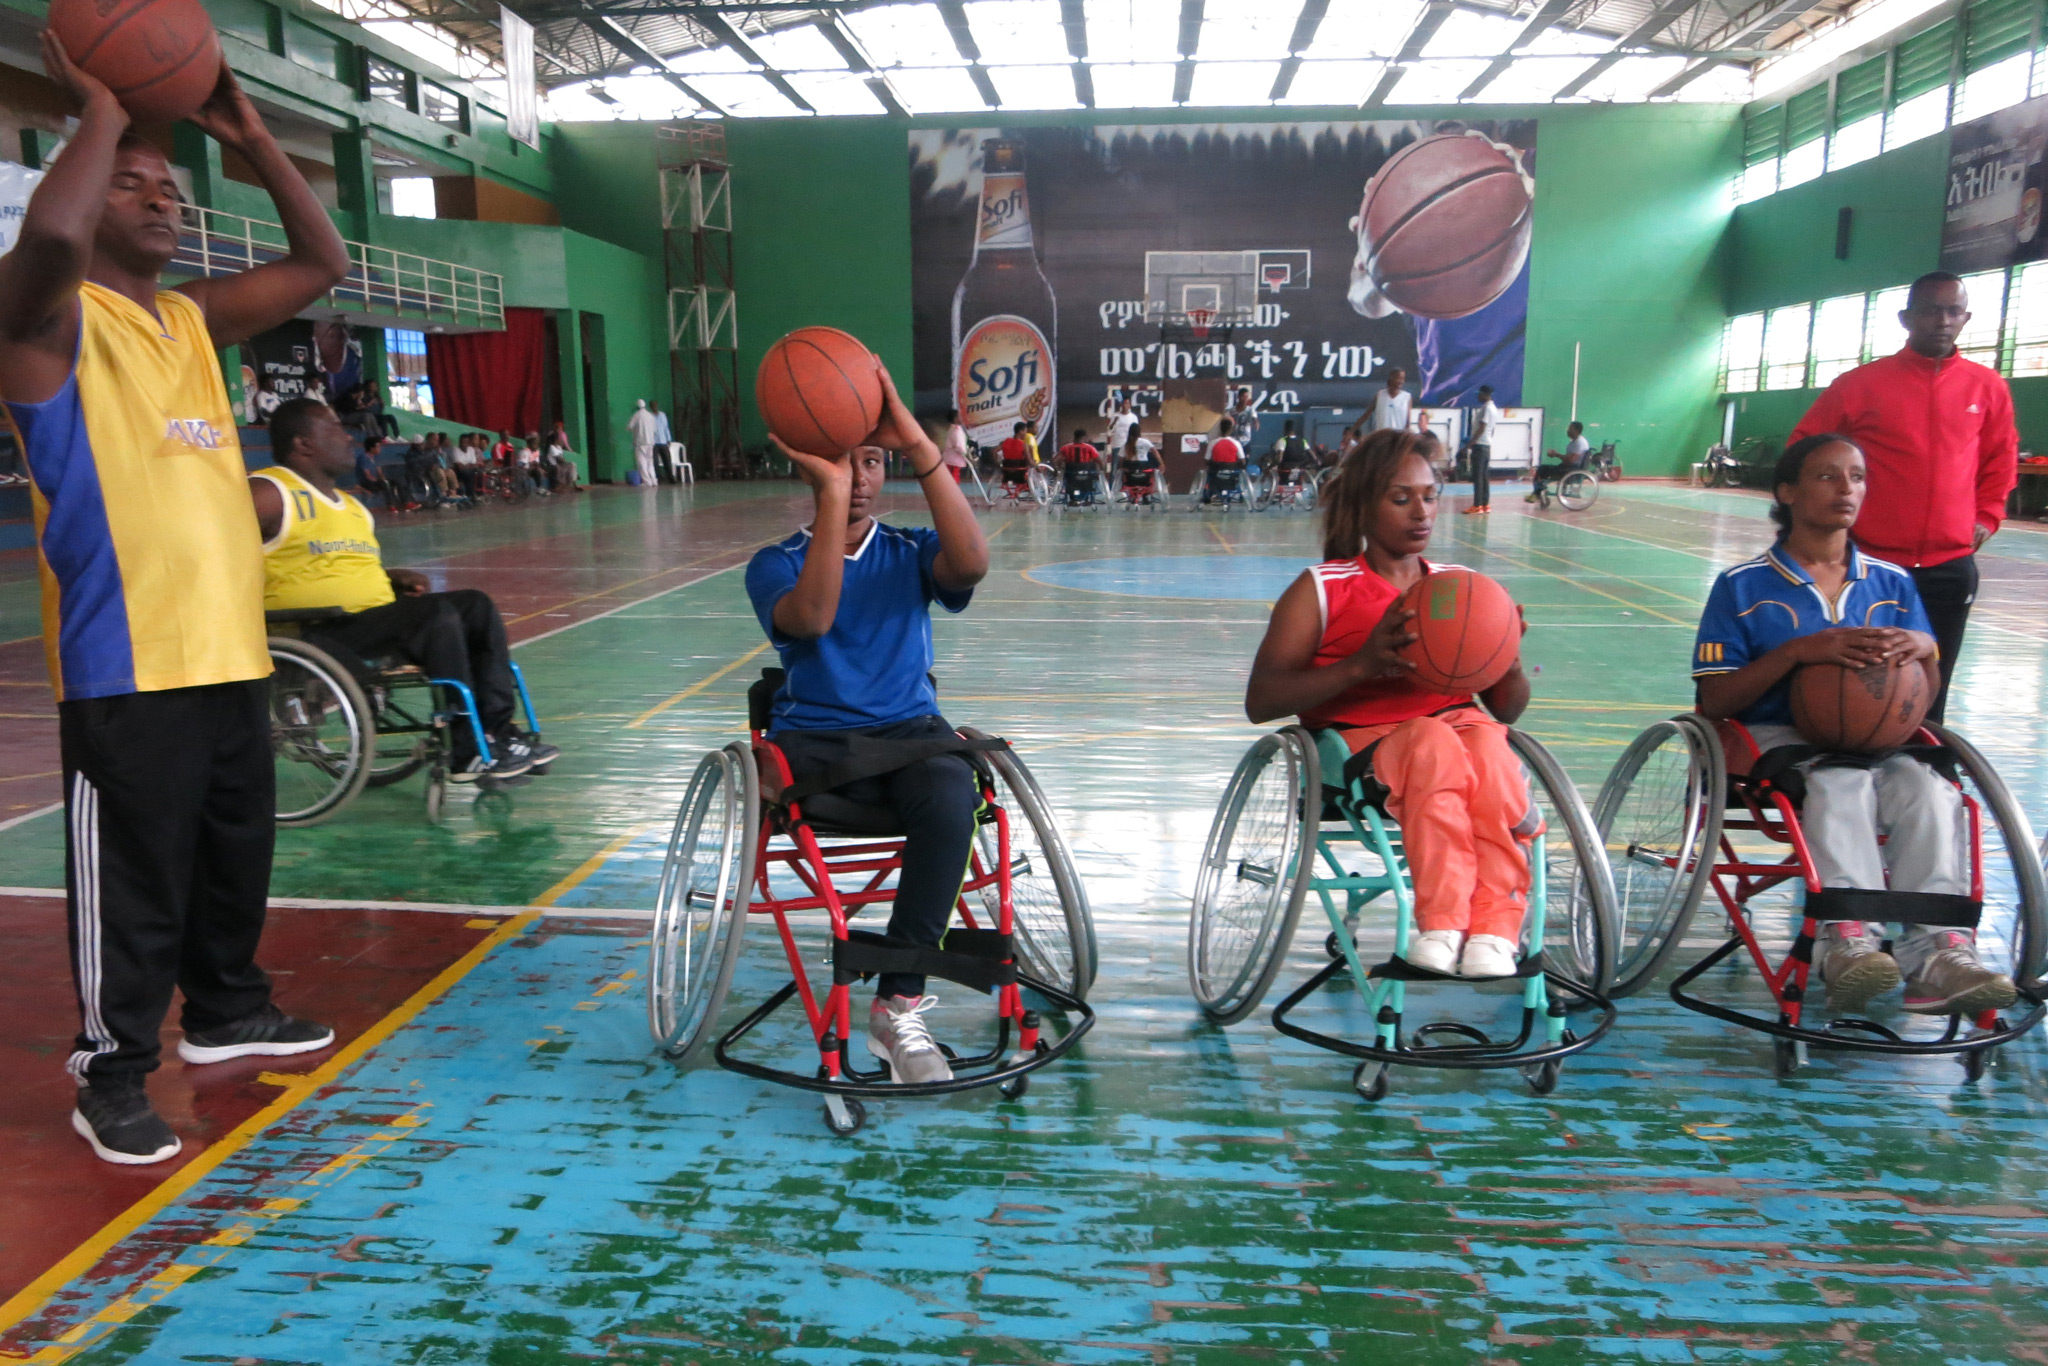 Israel Nuclear Weapons >> A vital assist for Ethiopia's wheelchair basketball | ICRC